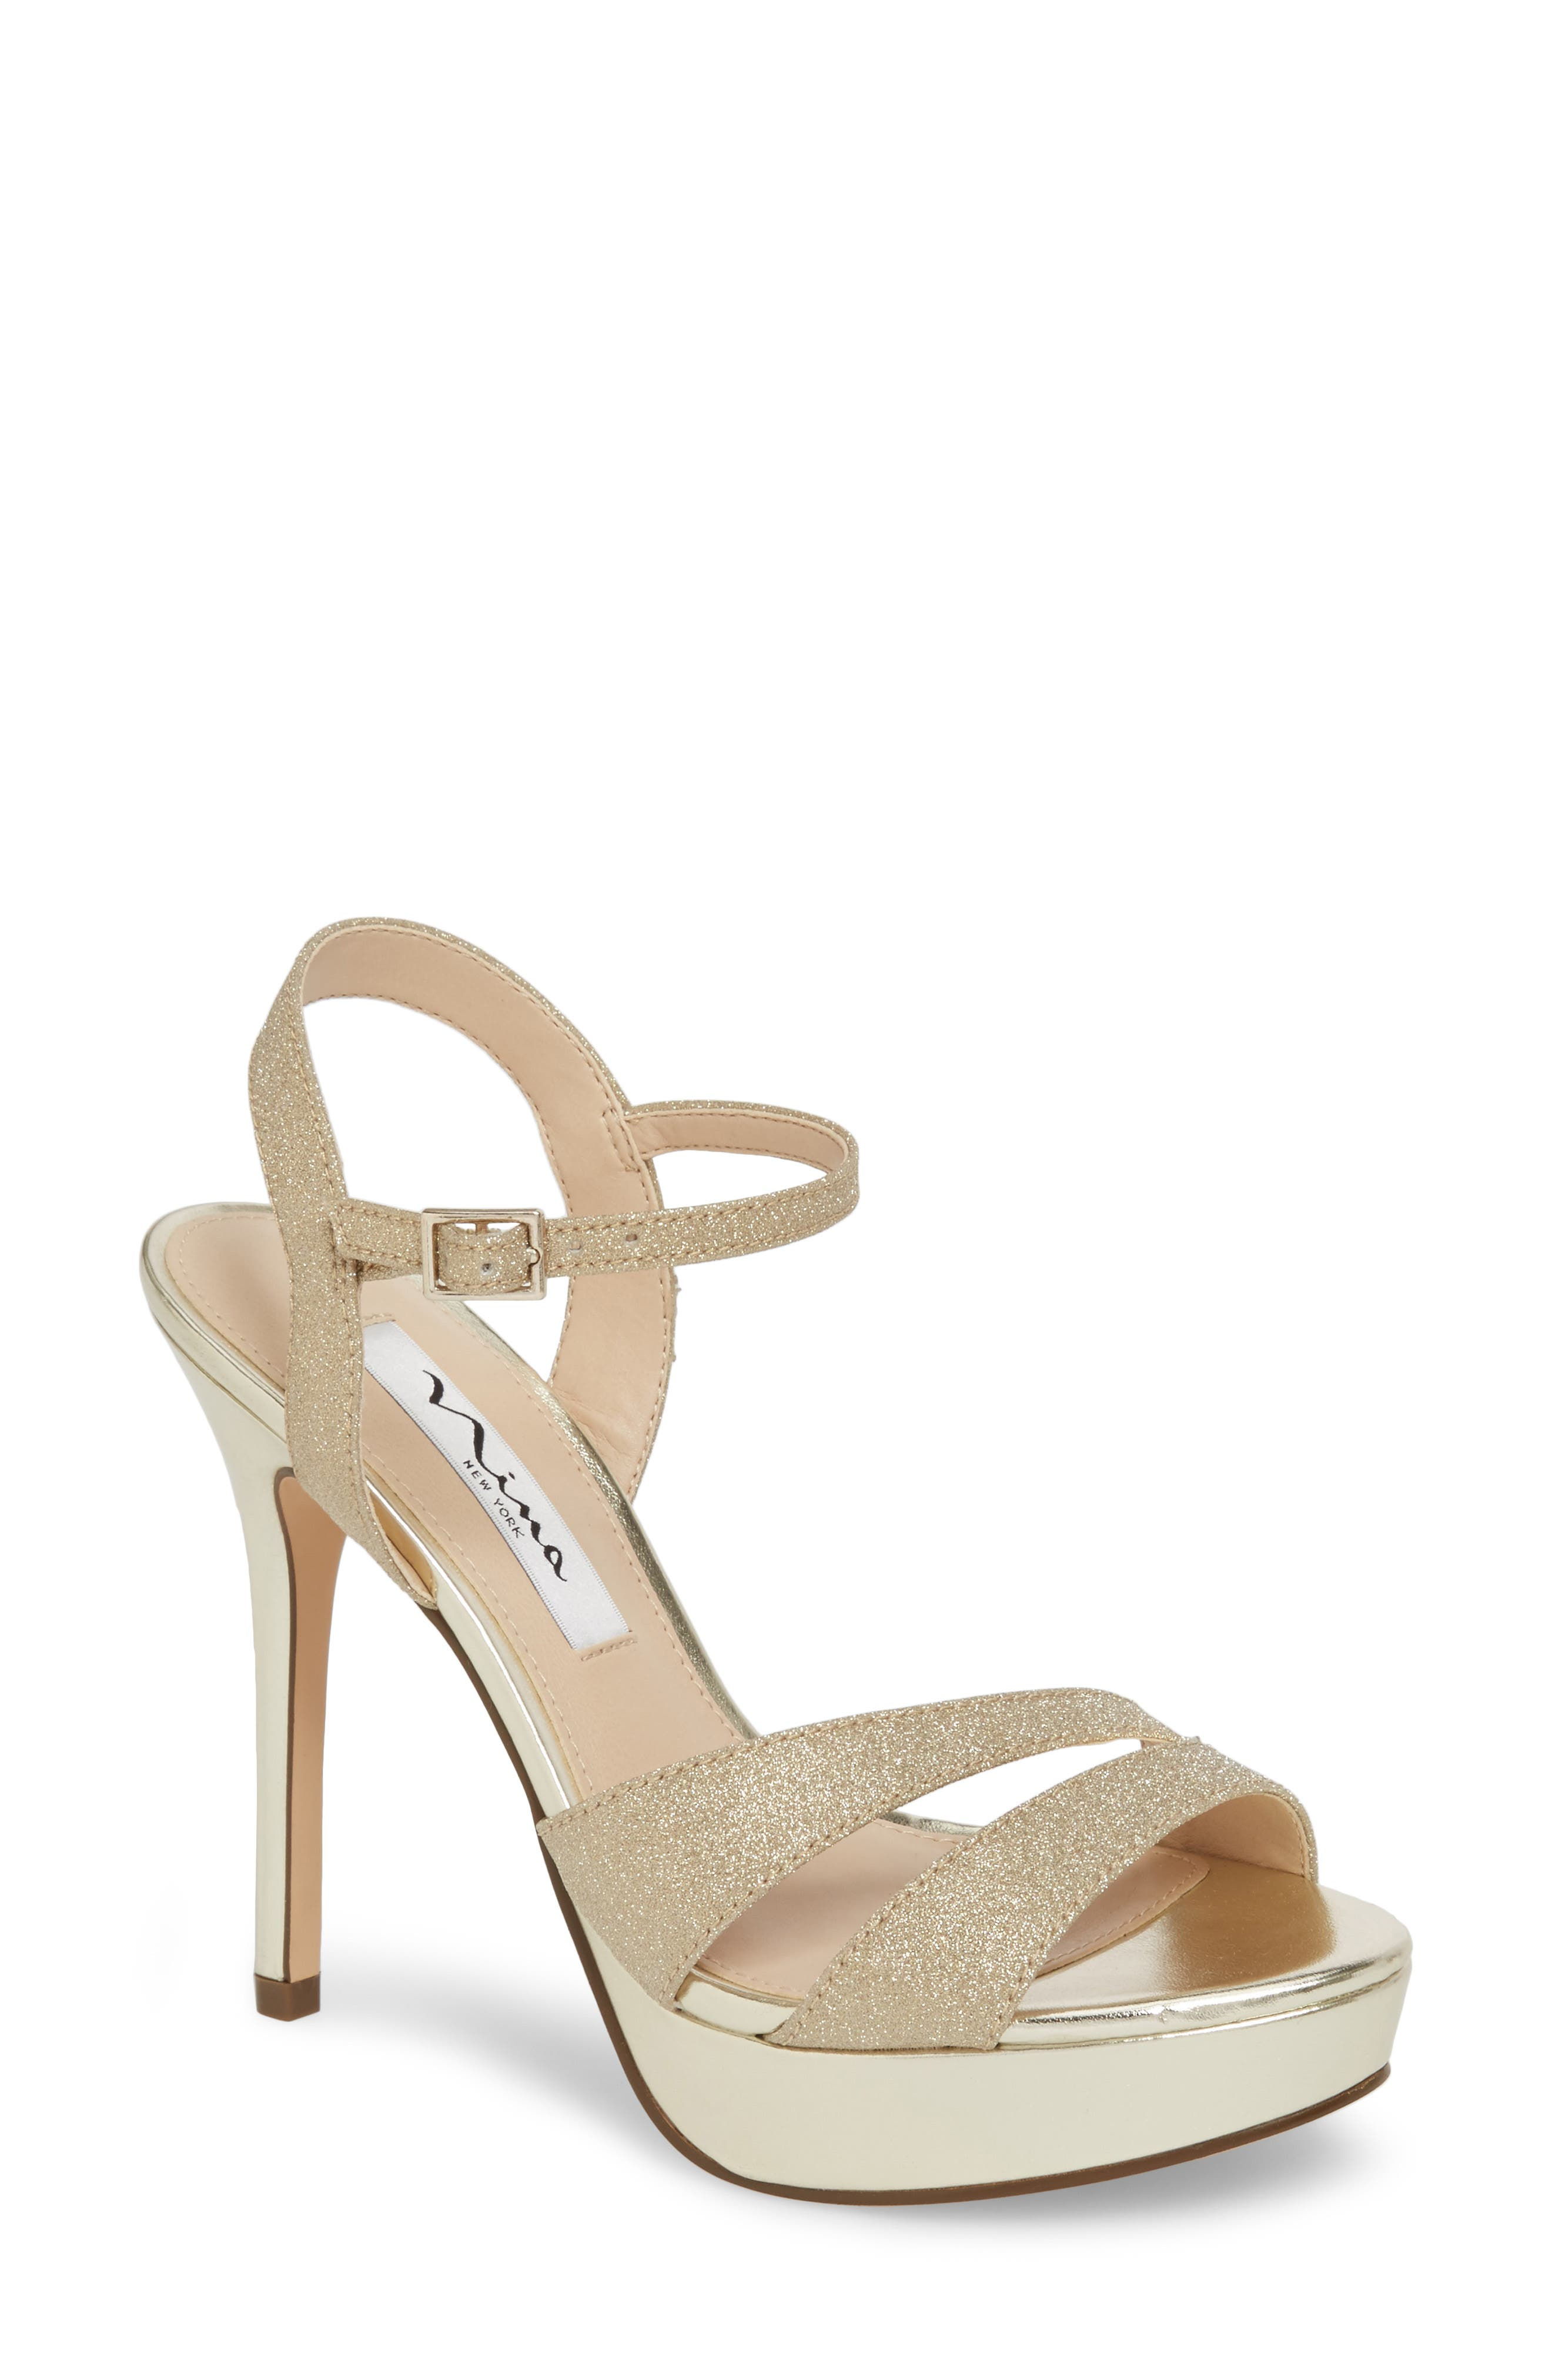 Silana Platform Sandal,                             Main thumbnail 1, color,                             Gold Glitter Fabric